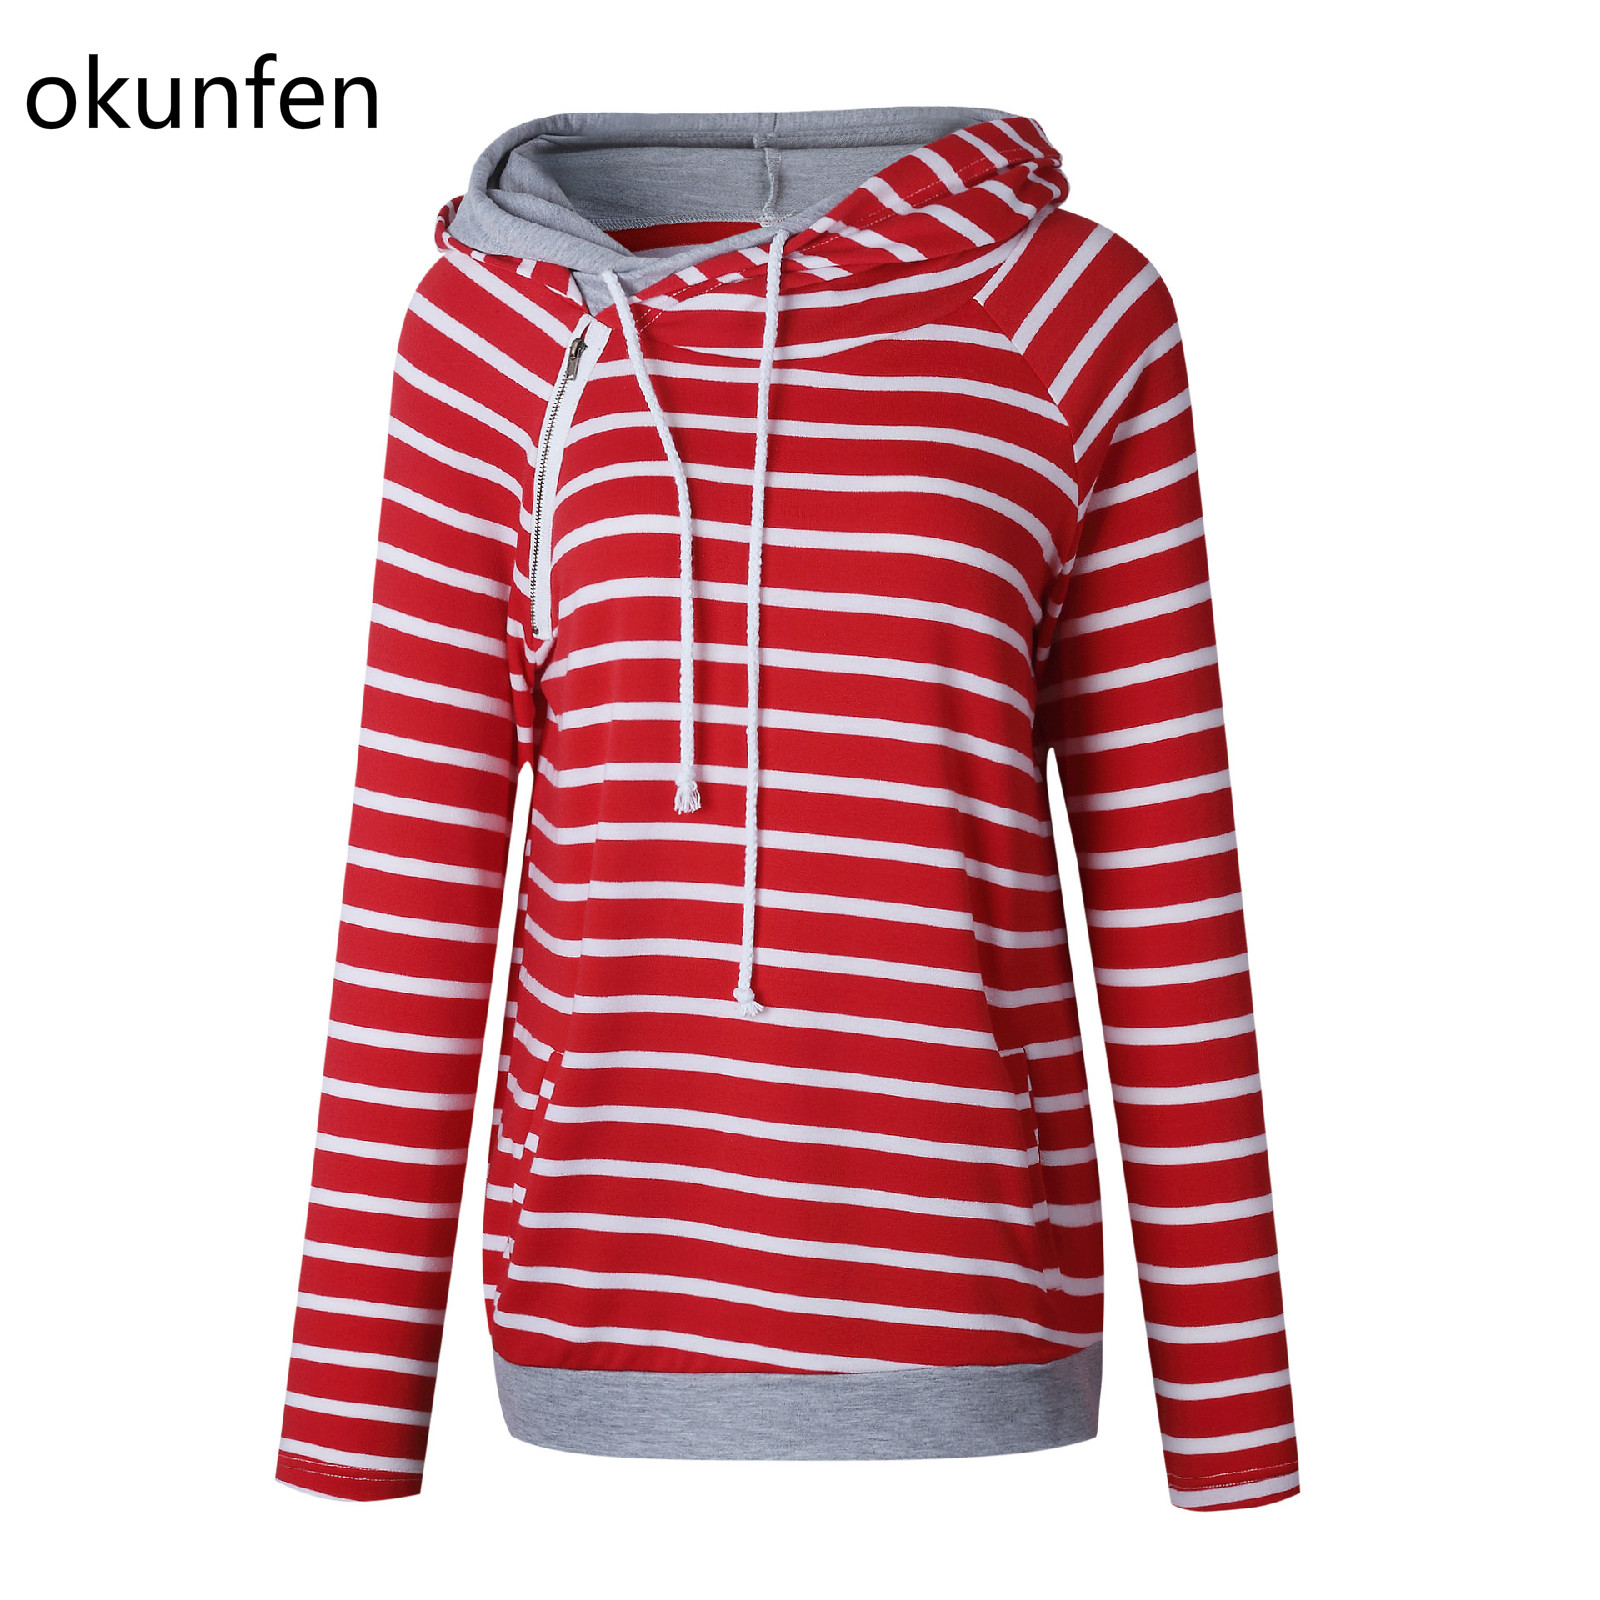 Okunfen Autumn Striped Maternity Top Fashion Pregnancy Clothes for Pregnant Women Maternity Hoodie Sweater стоимость